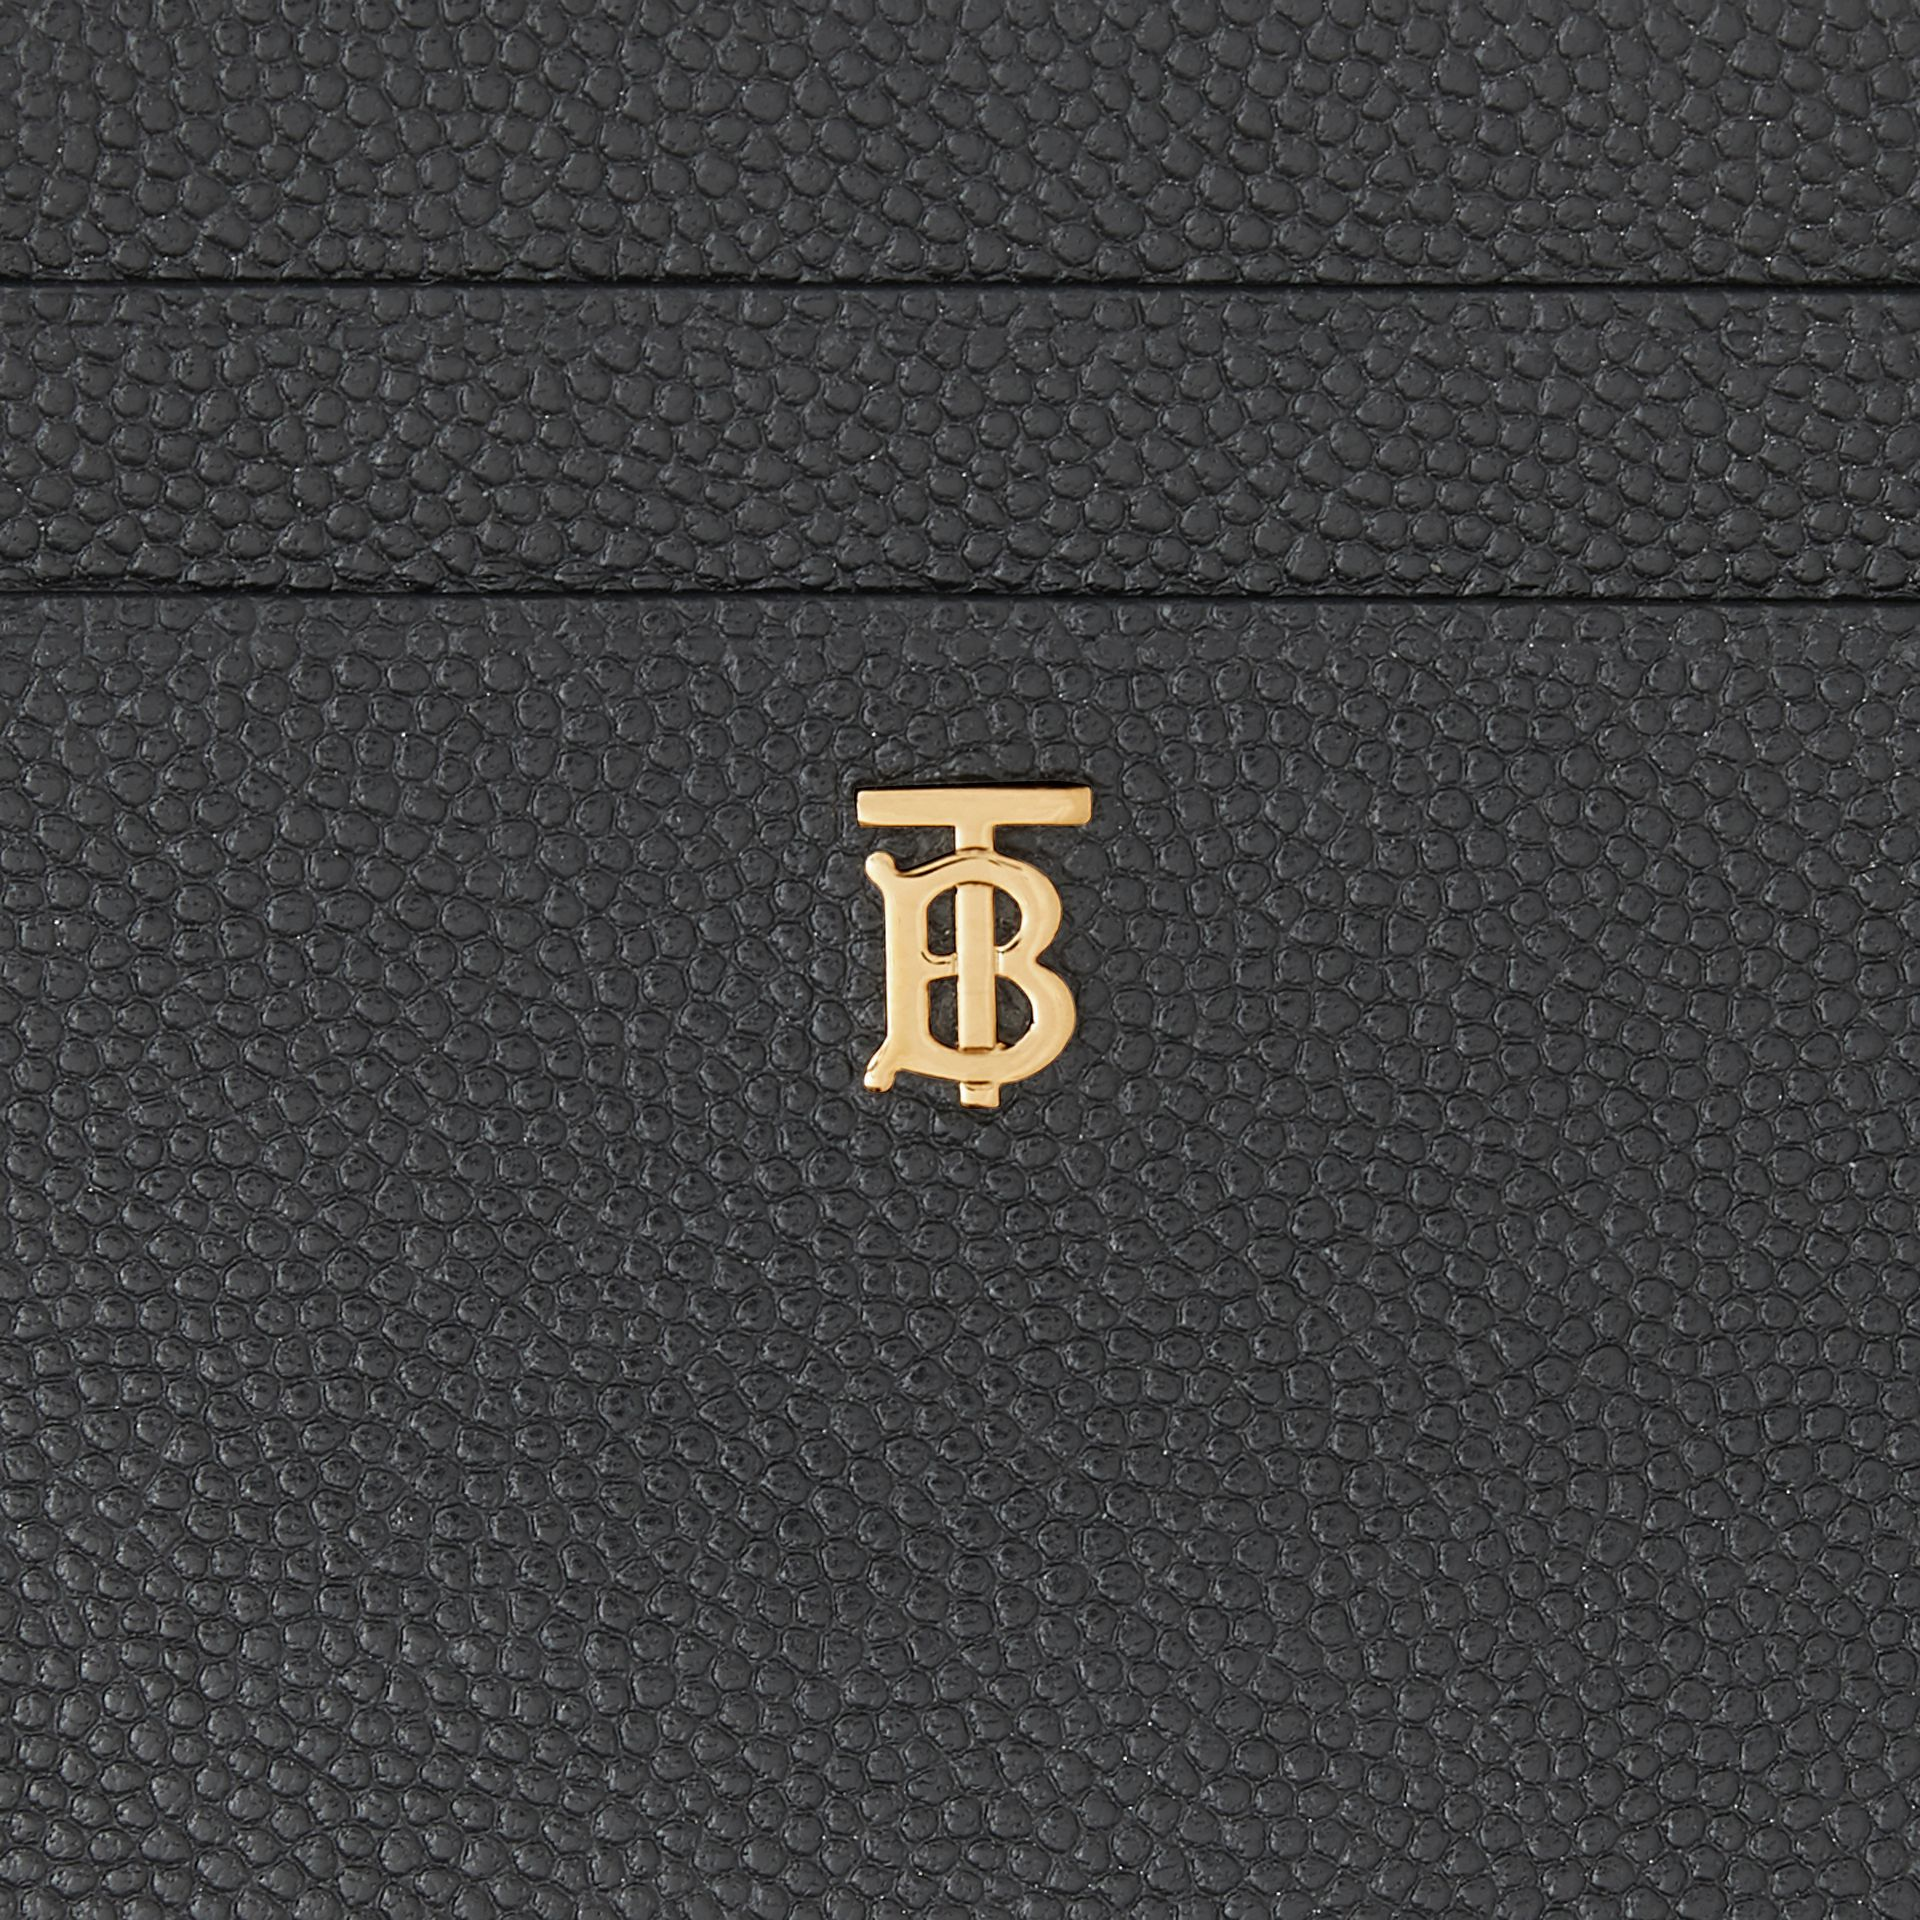 Monogram Motif Leather Card Case in Black - Women | Burberry United Kingdom - gallery image 1